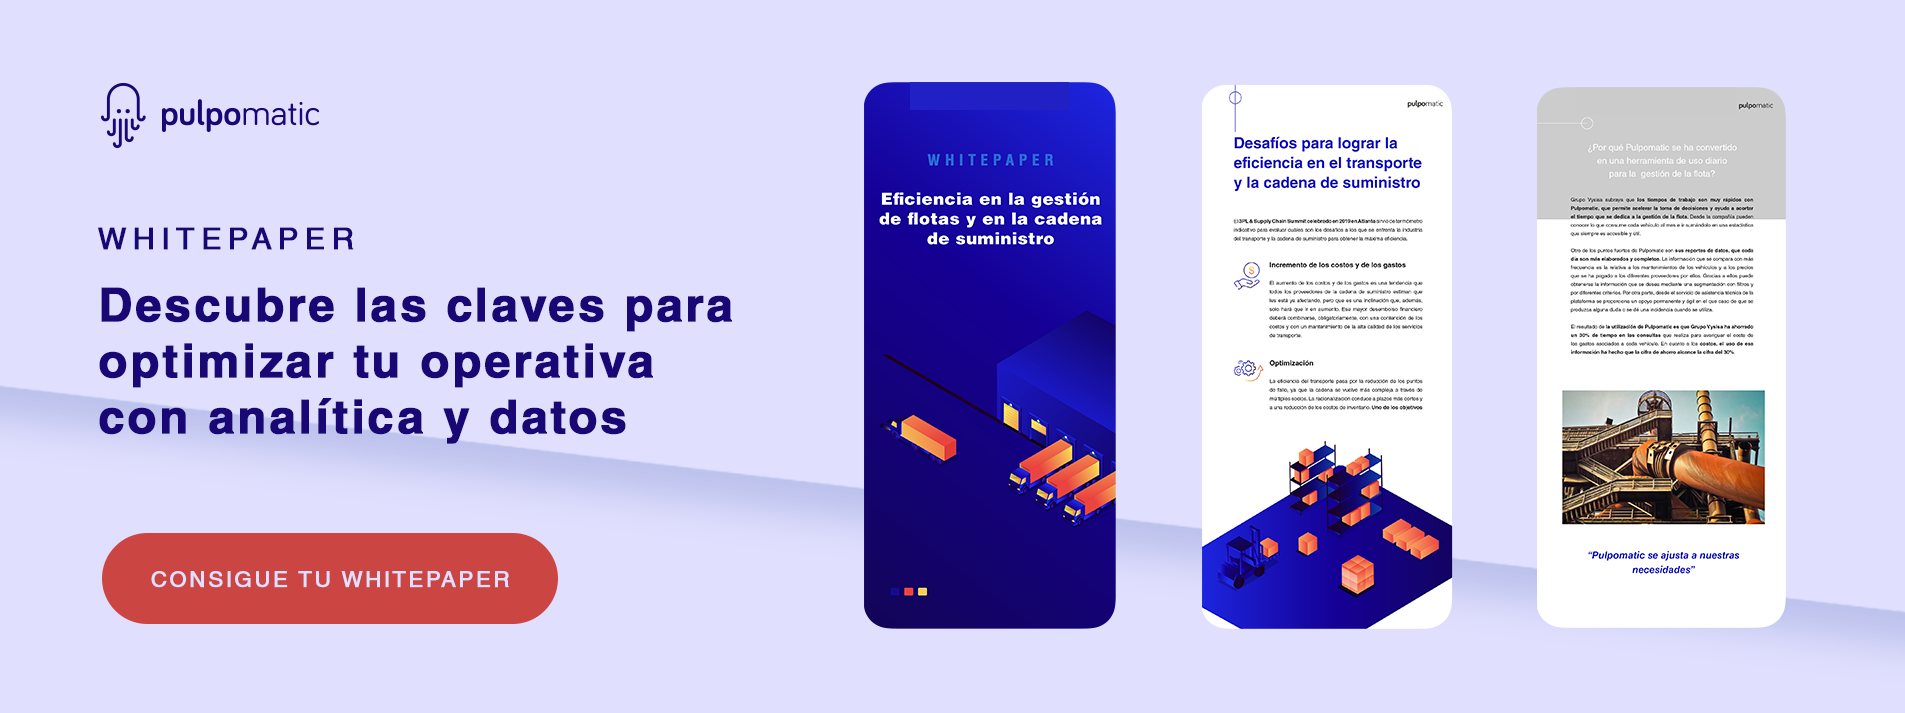 Whitepaper_Eficiencia_Banner_Guía_Optimización_1905x713